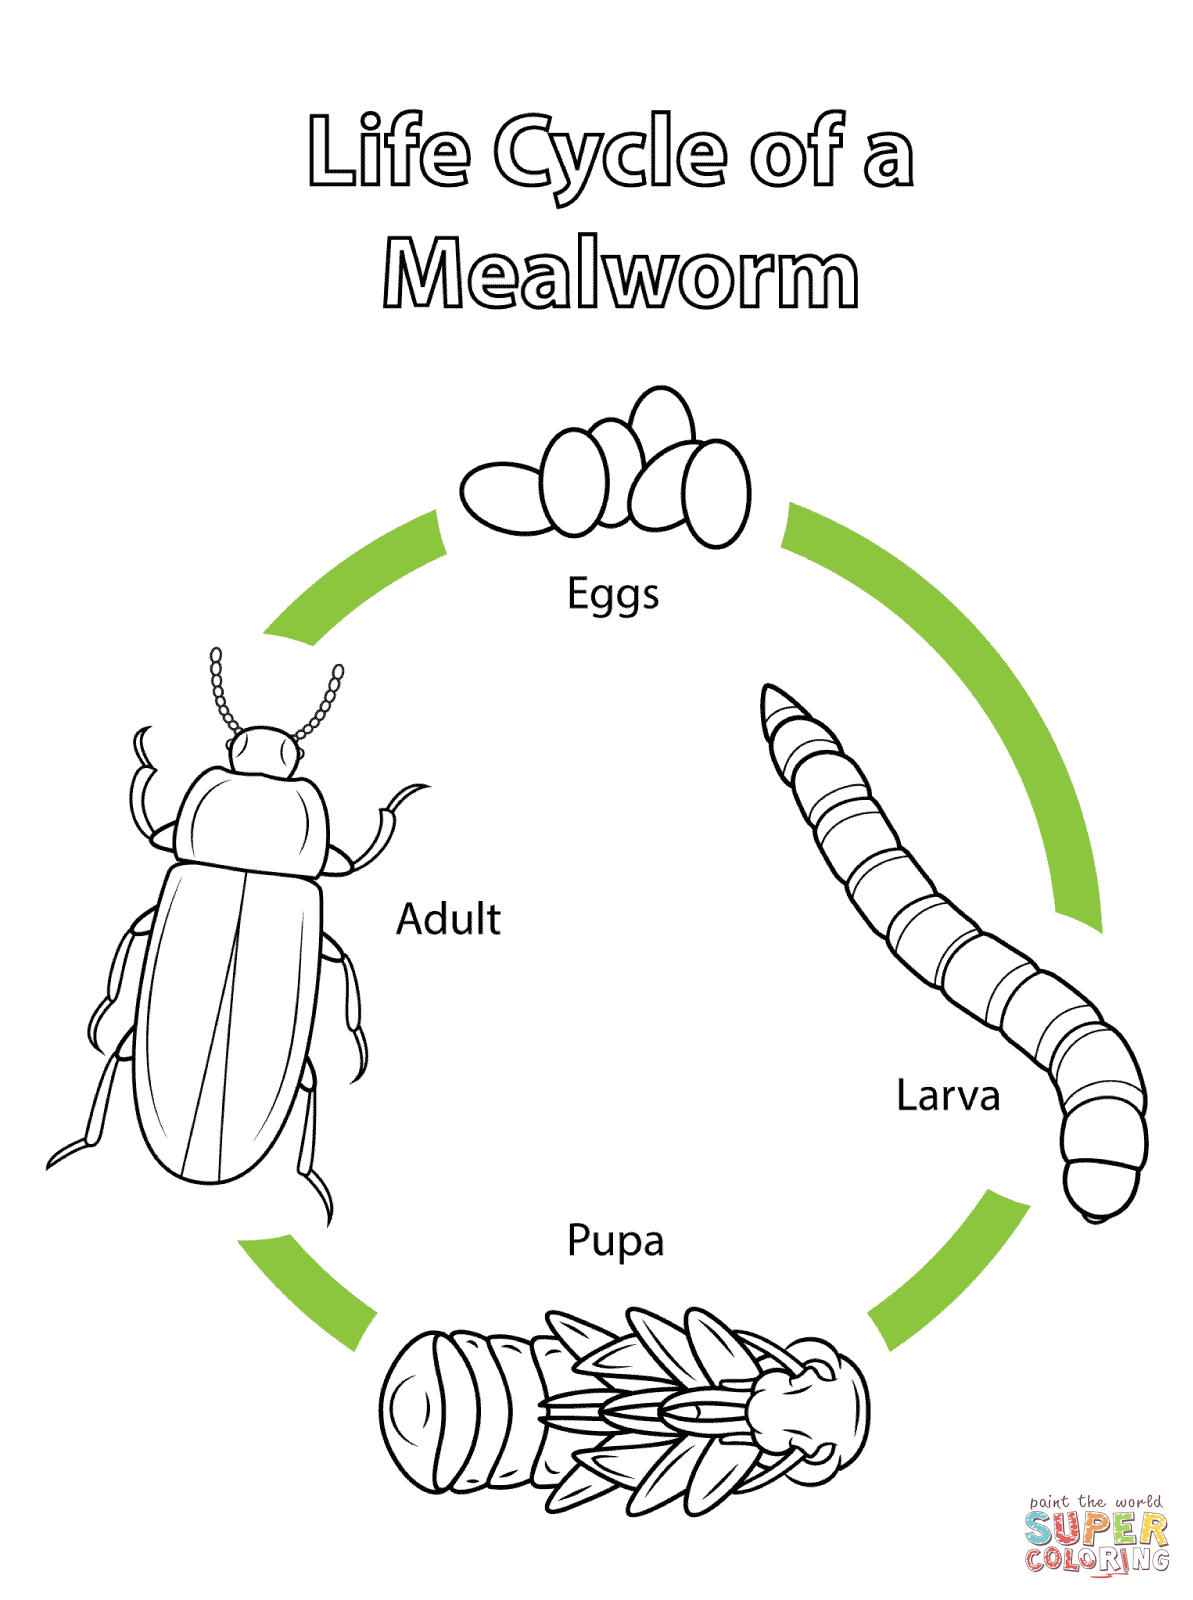 Life Cycle Of A Mealworm